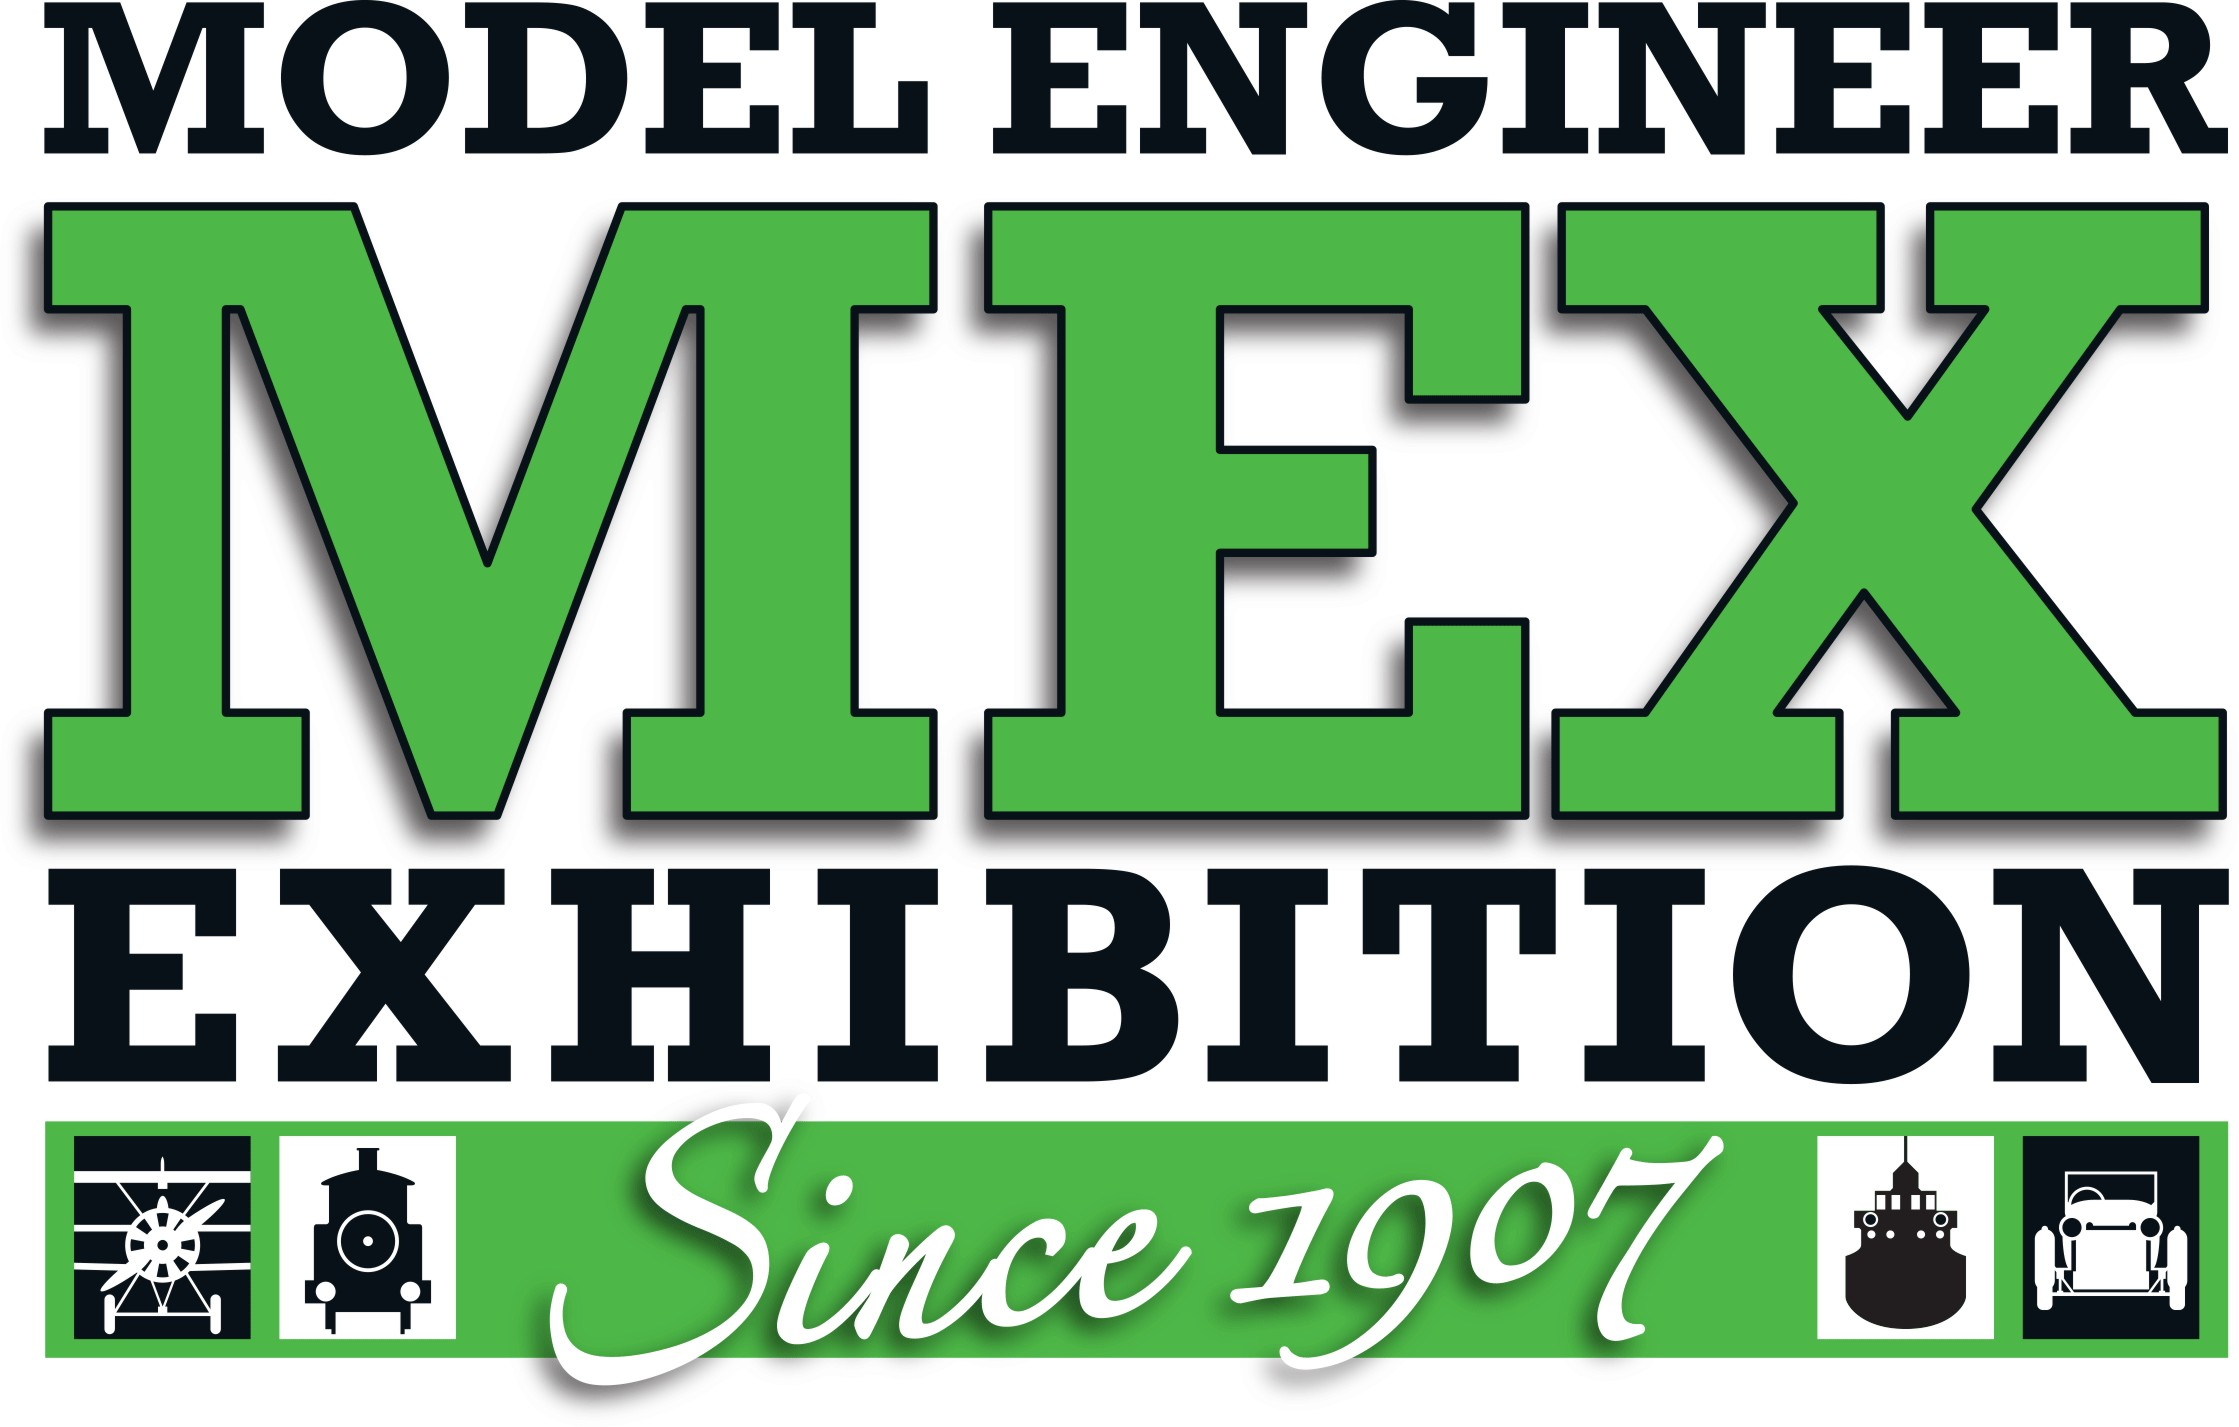 The 2016 Model Engineer Exhibition